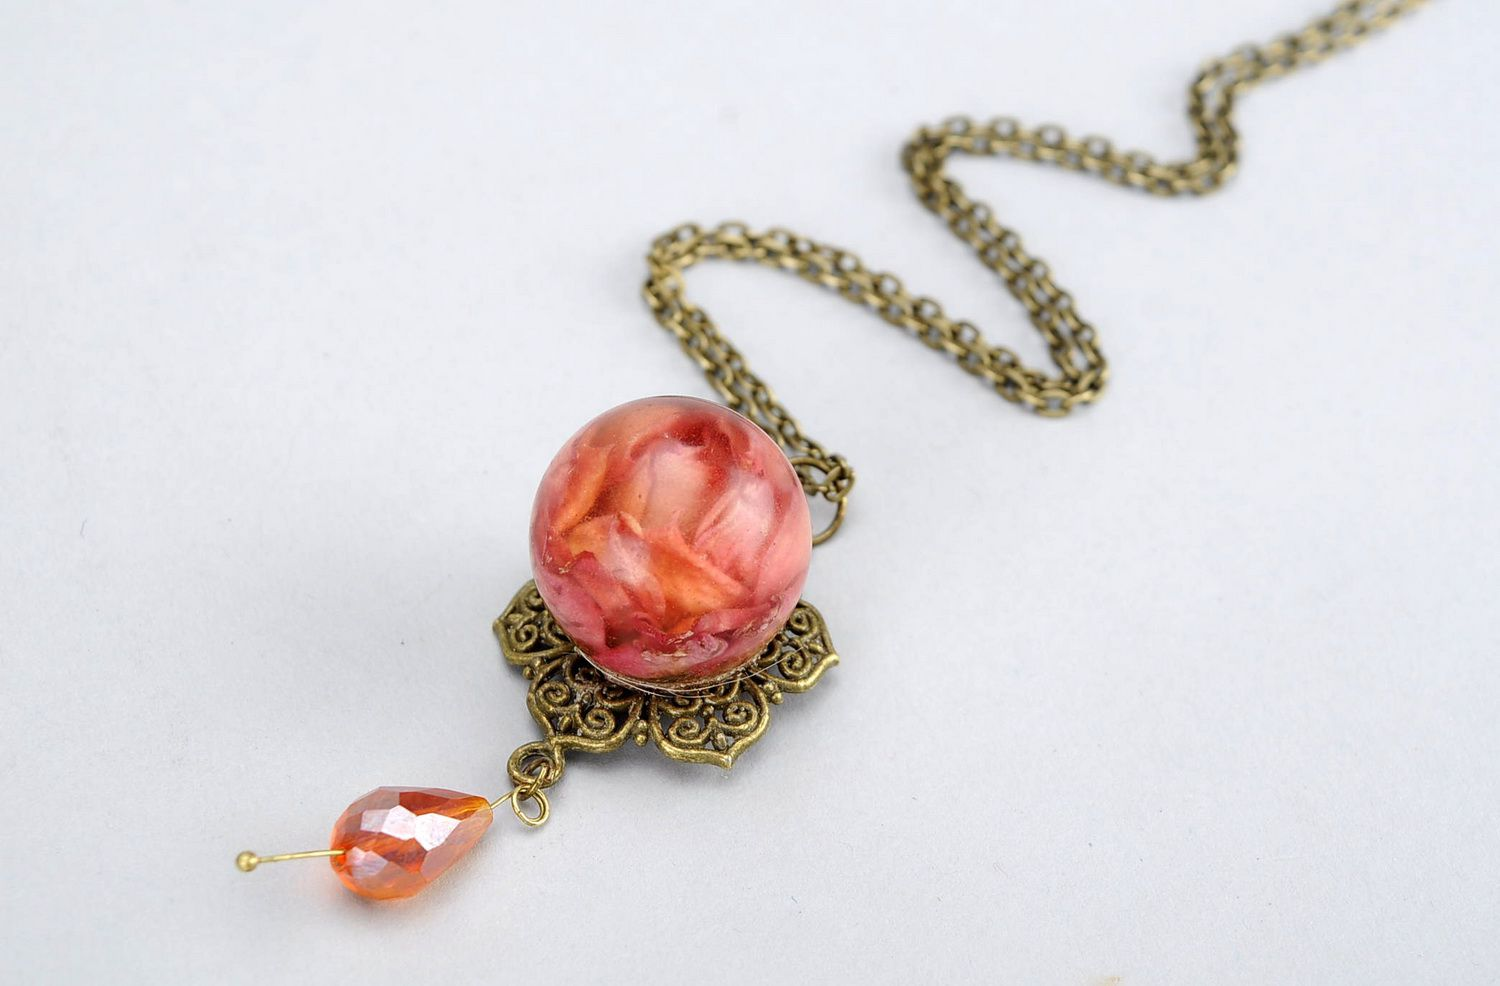 resin jewelry Pendant with petals of orange rose - MADEheart.com